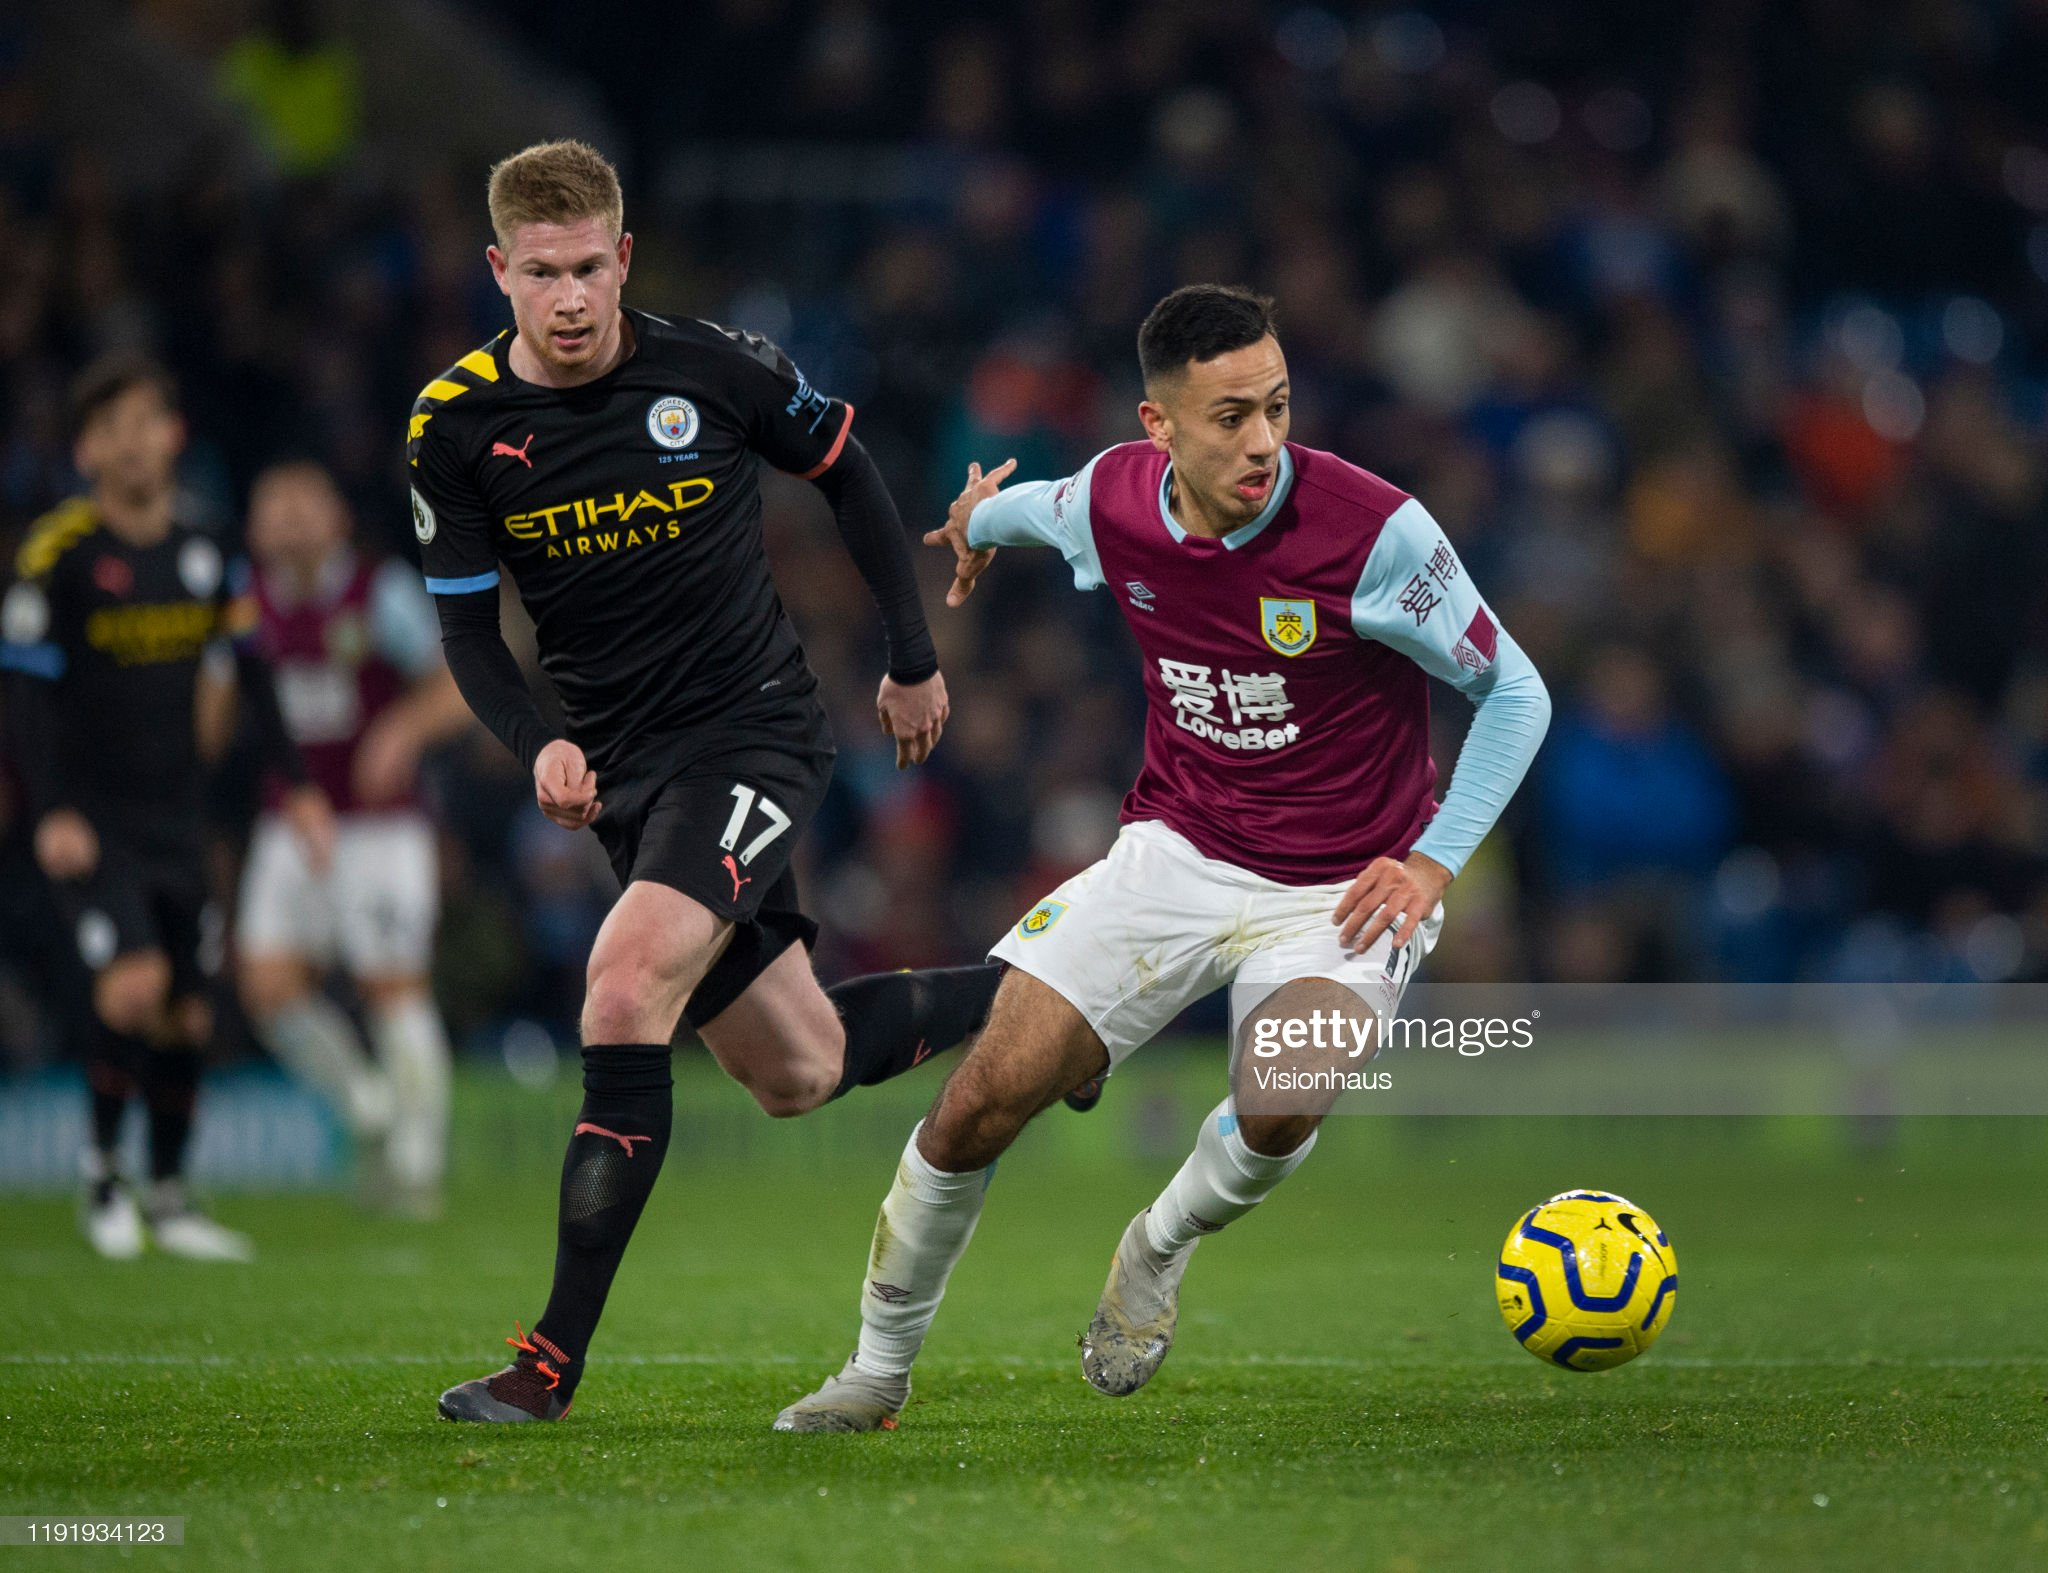 Manchester City v Burnley Preview, prediction and odds